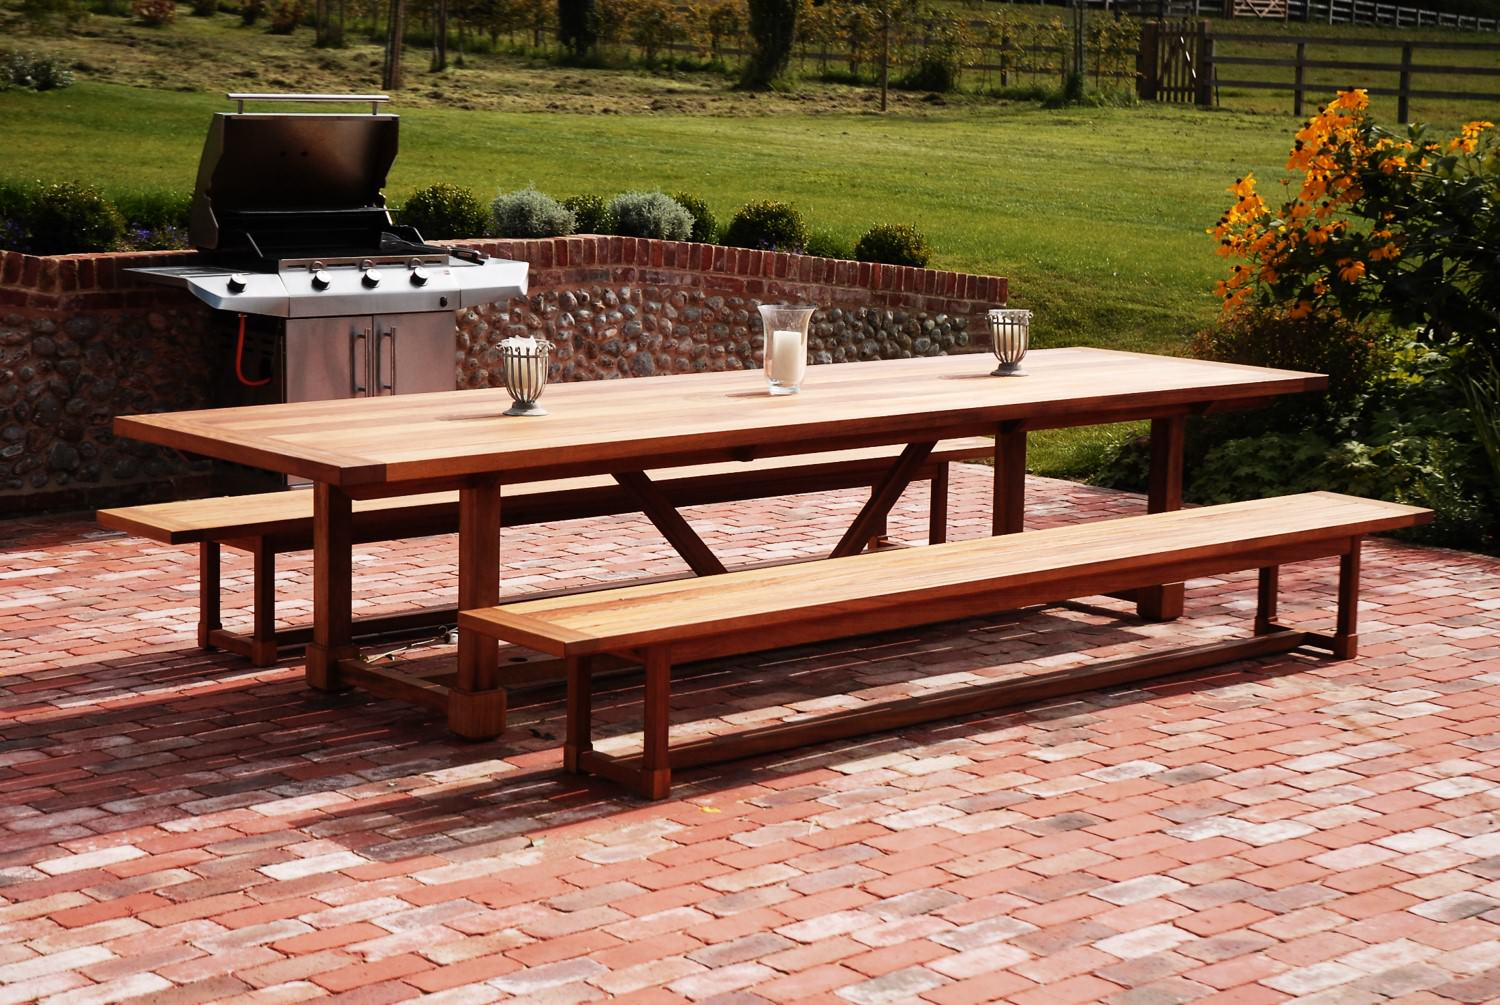 Handmade Outdoor Garden Table And Benches